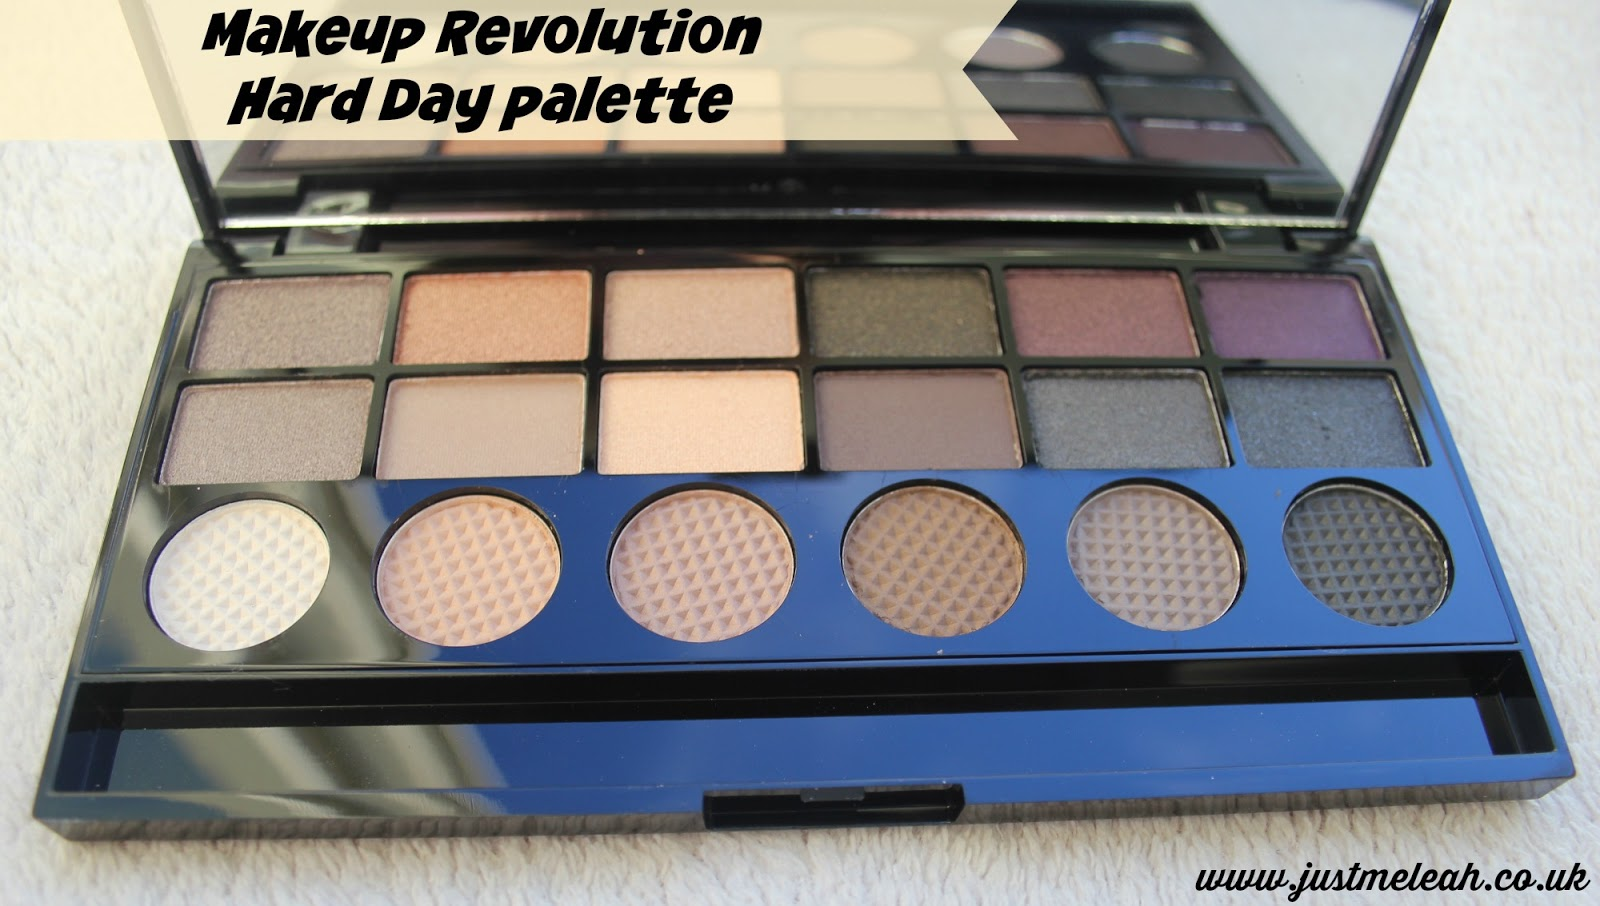 MAKEUP REVOLUTION HARD DAY PALETTE REVIEW